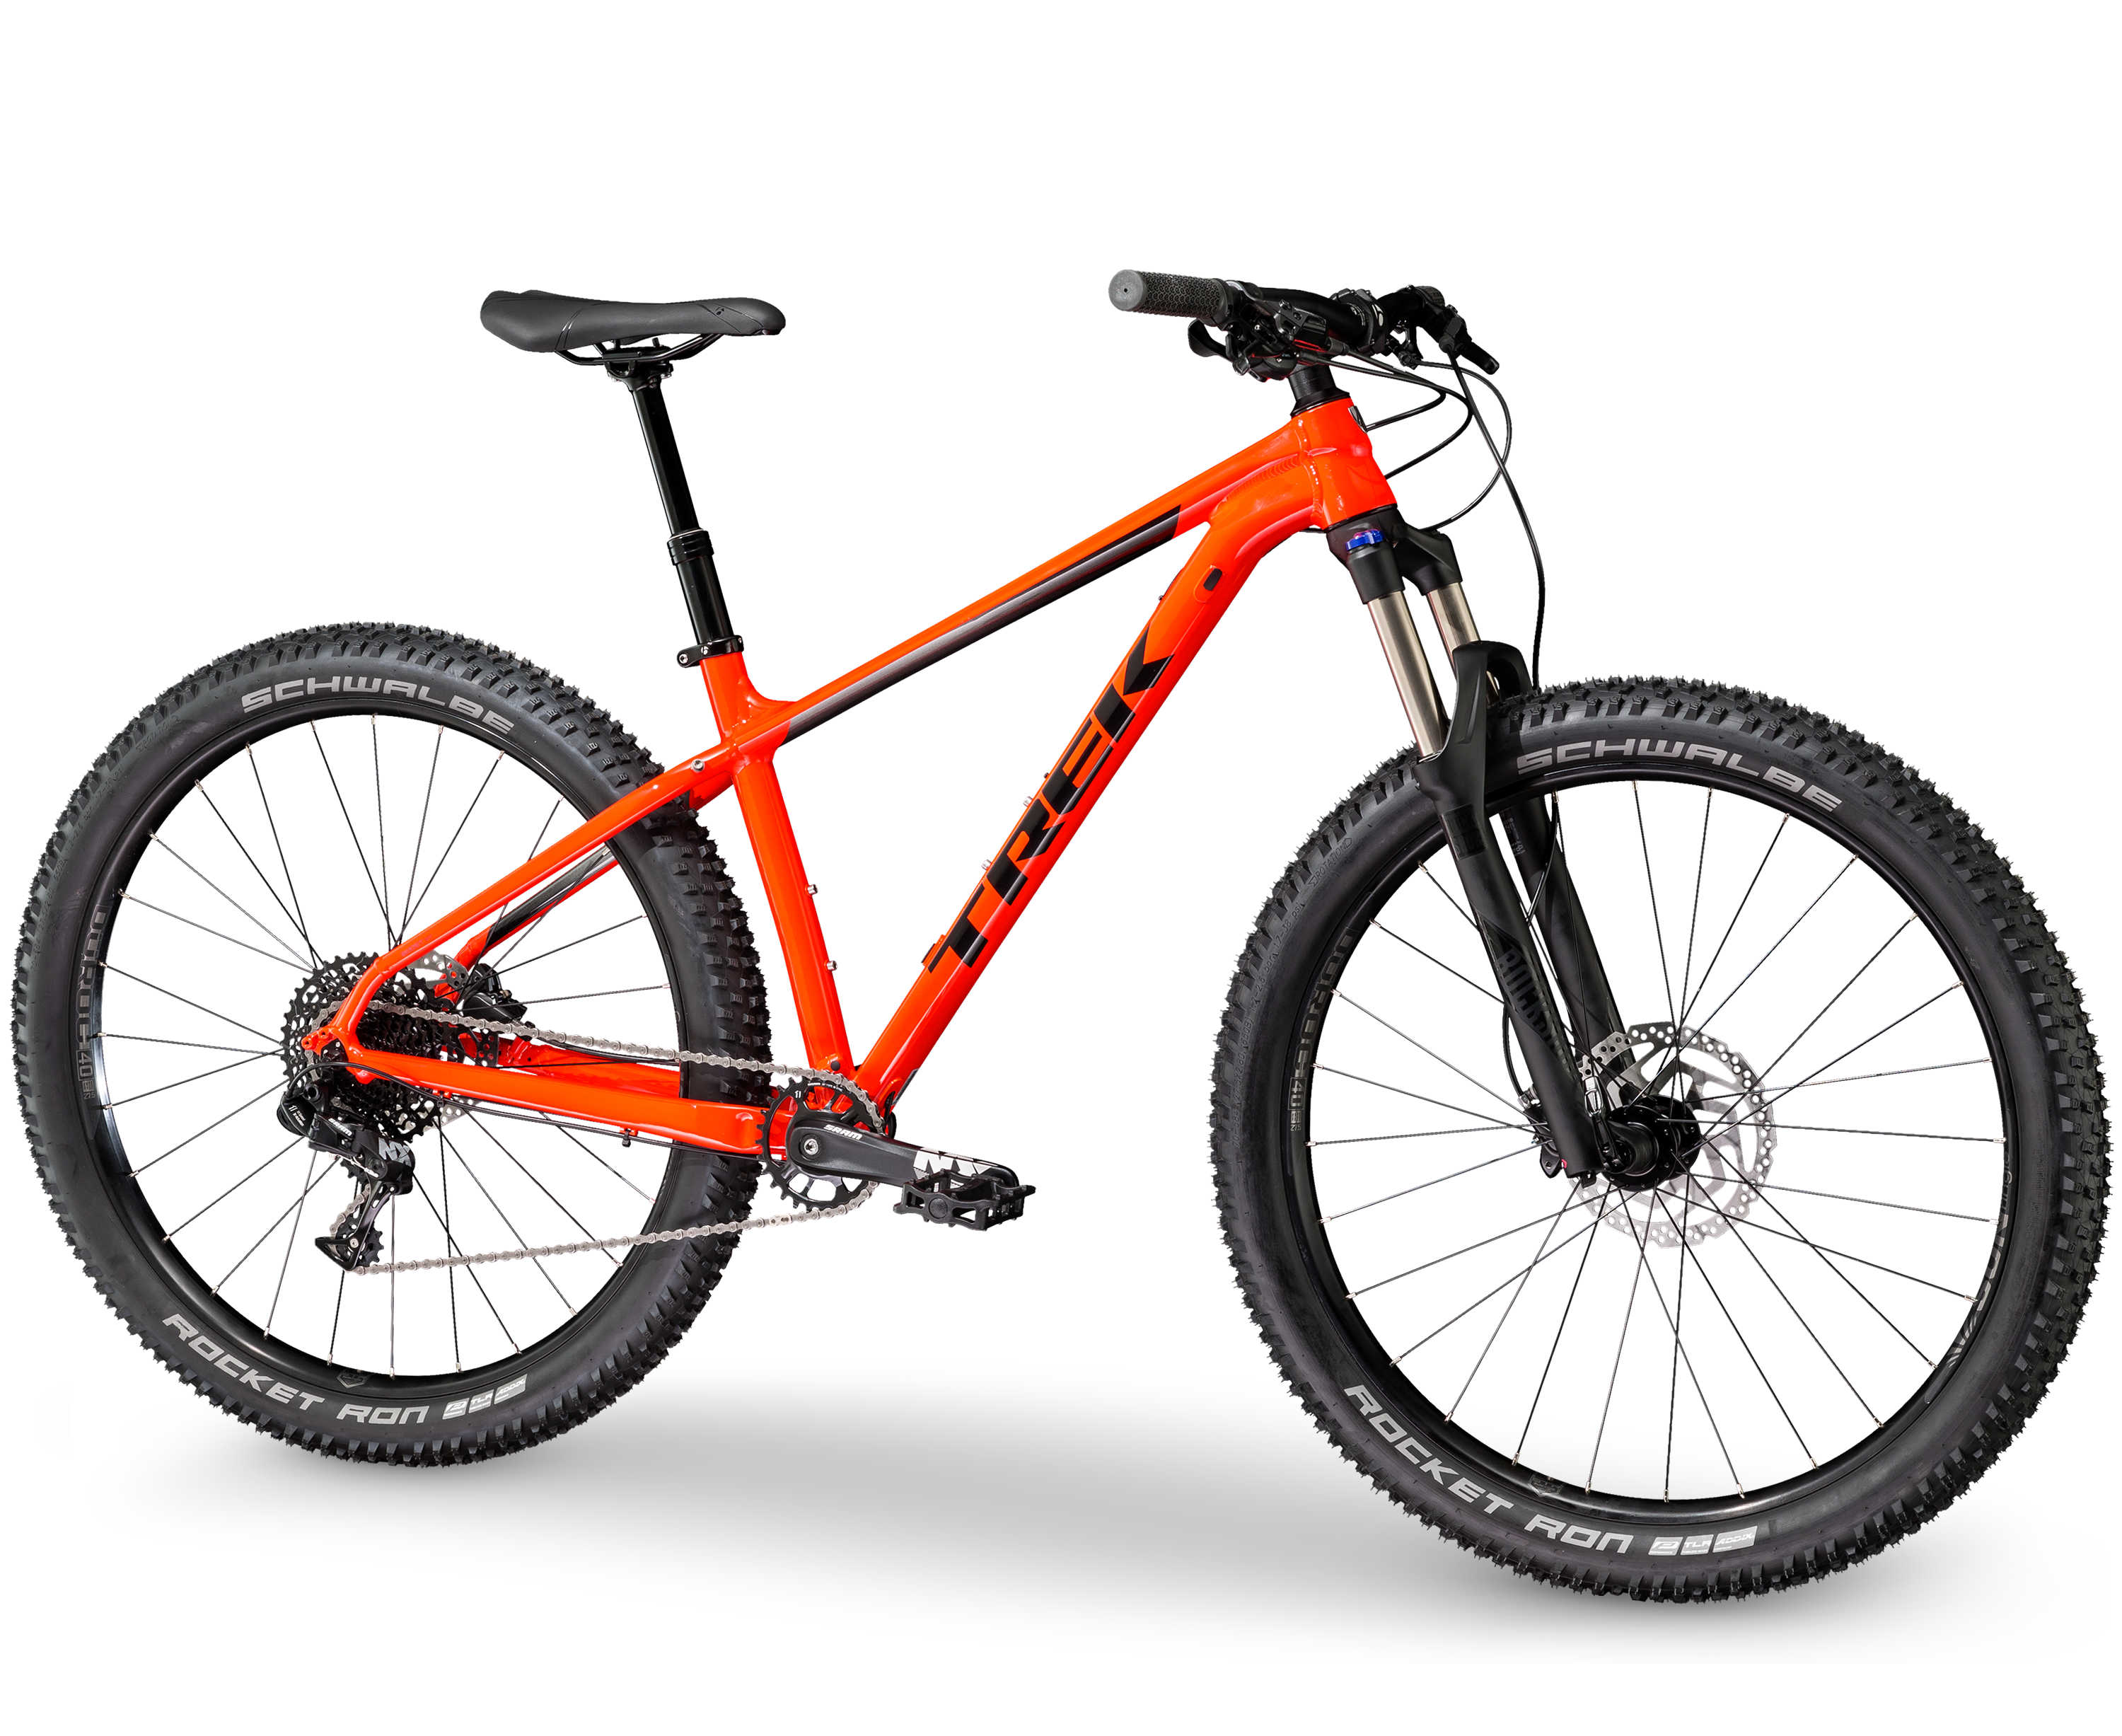 Trek Releases Its First Hardtail 27 5 Trail Bike The Roscoe